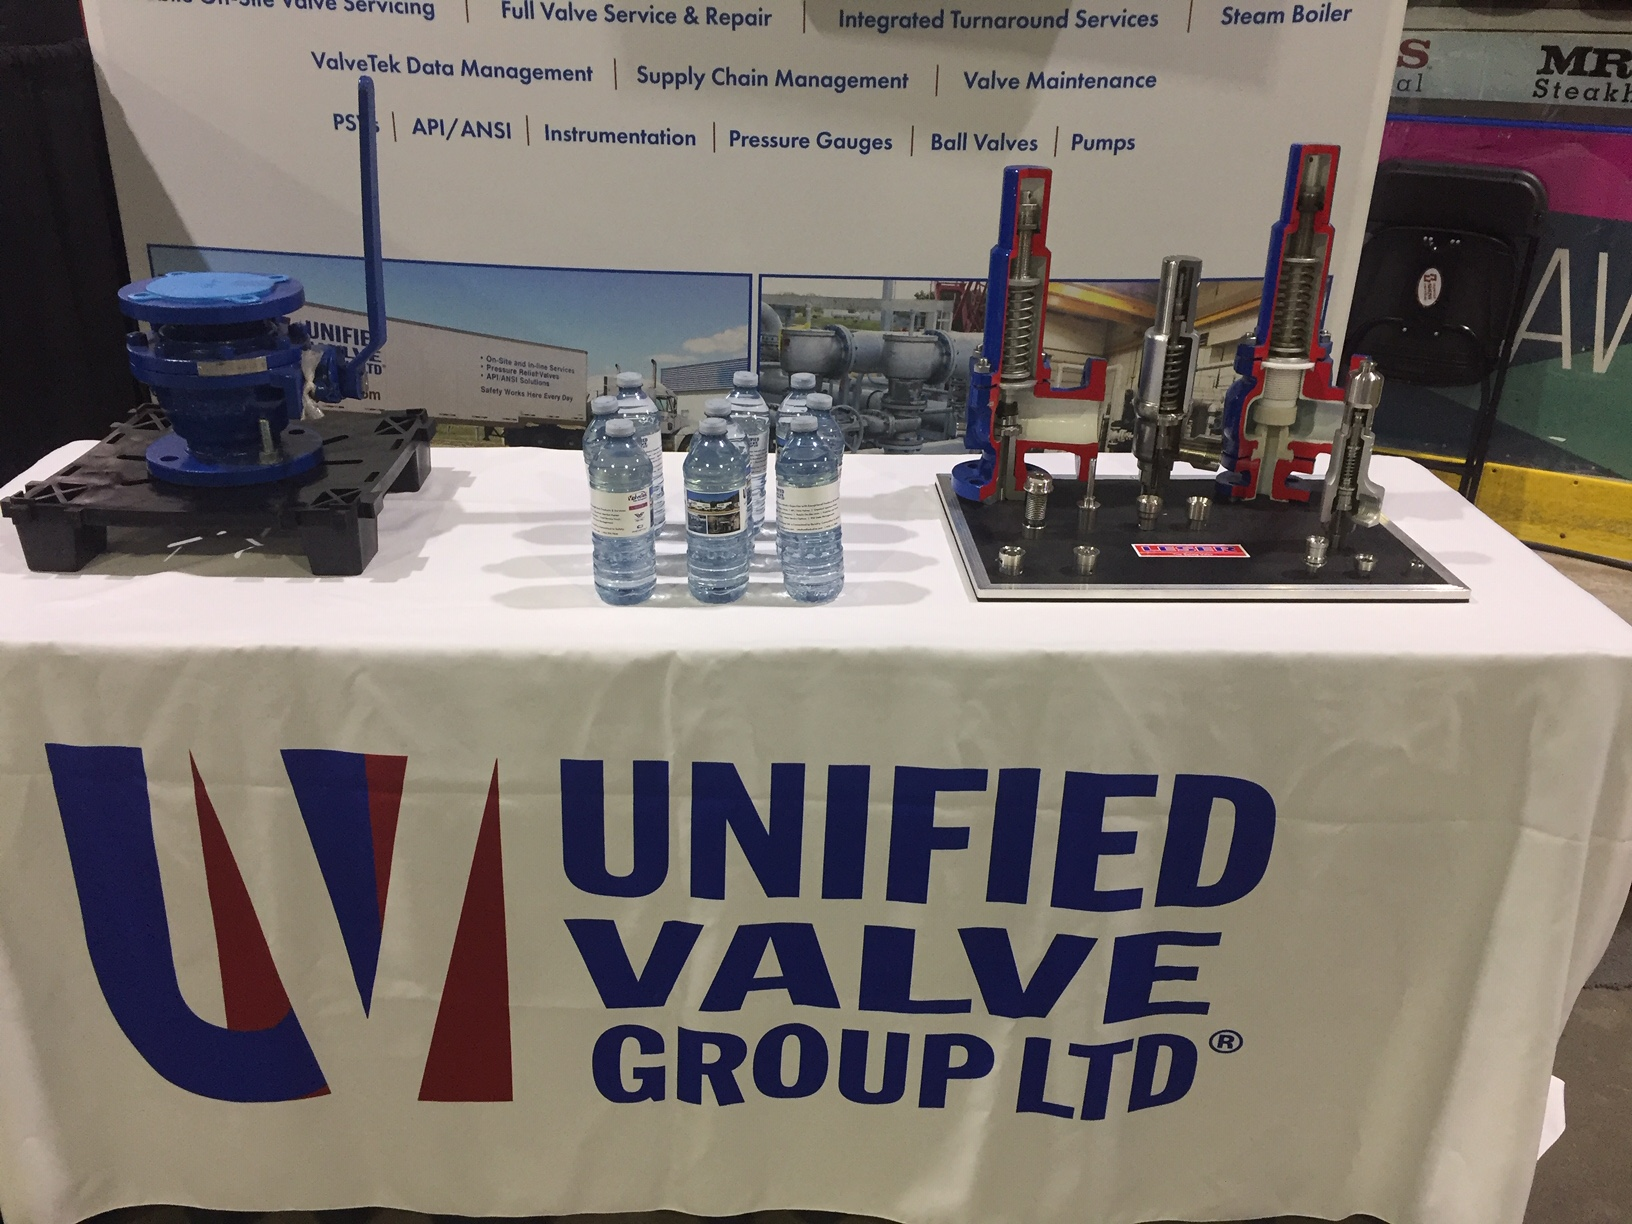 Unified Valve Tradeshows - Unified Valve Group Ltd